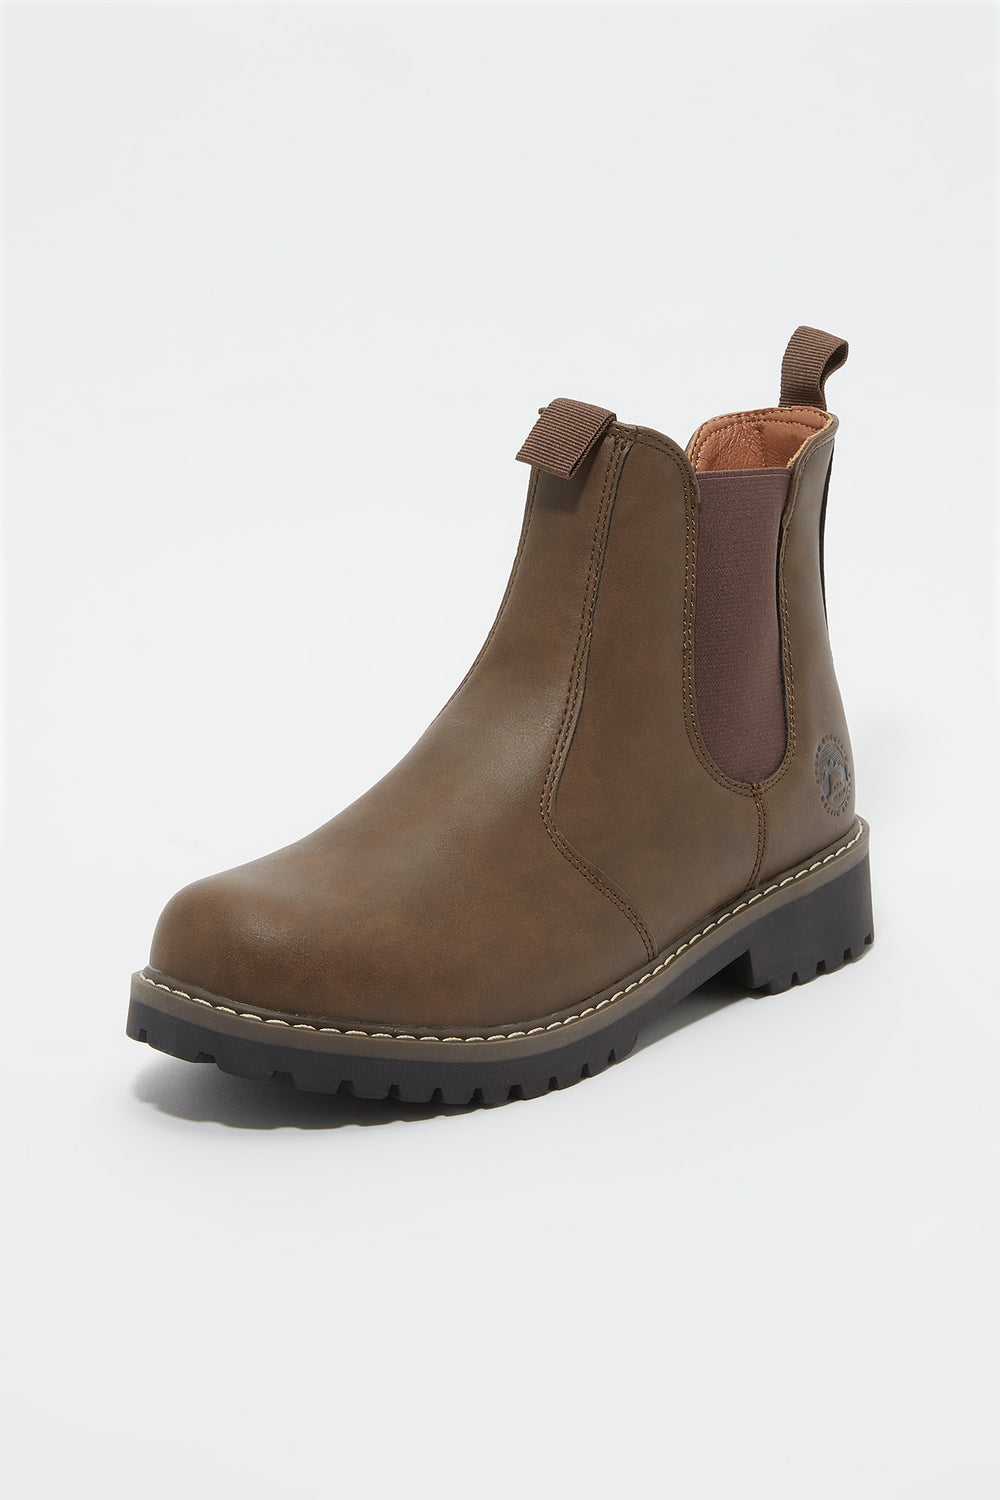 Storm Mountain Mens Pull-On Chelsea Boot Brown